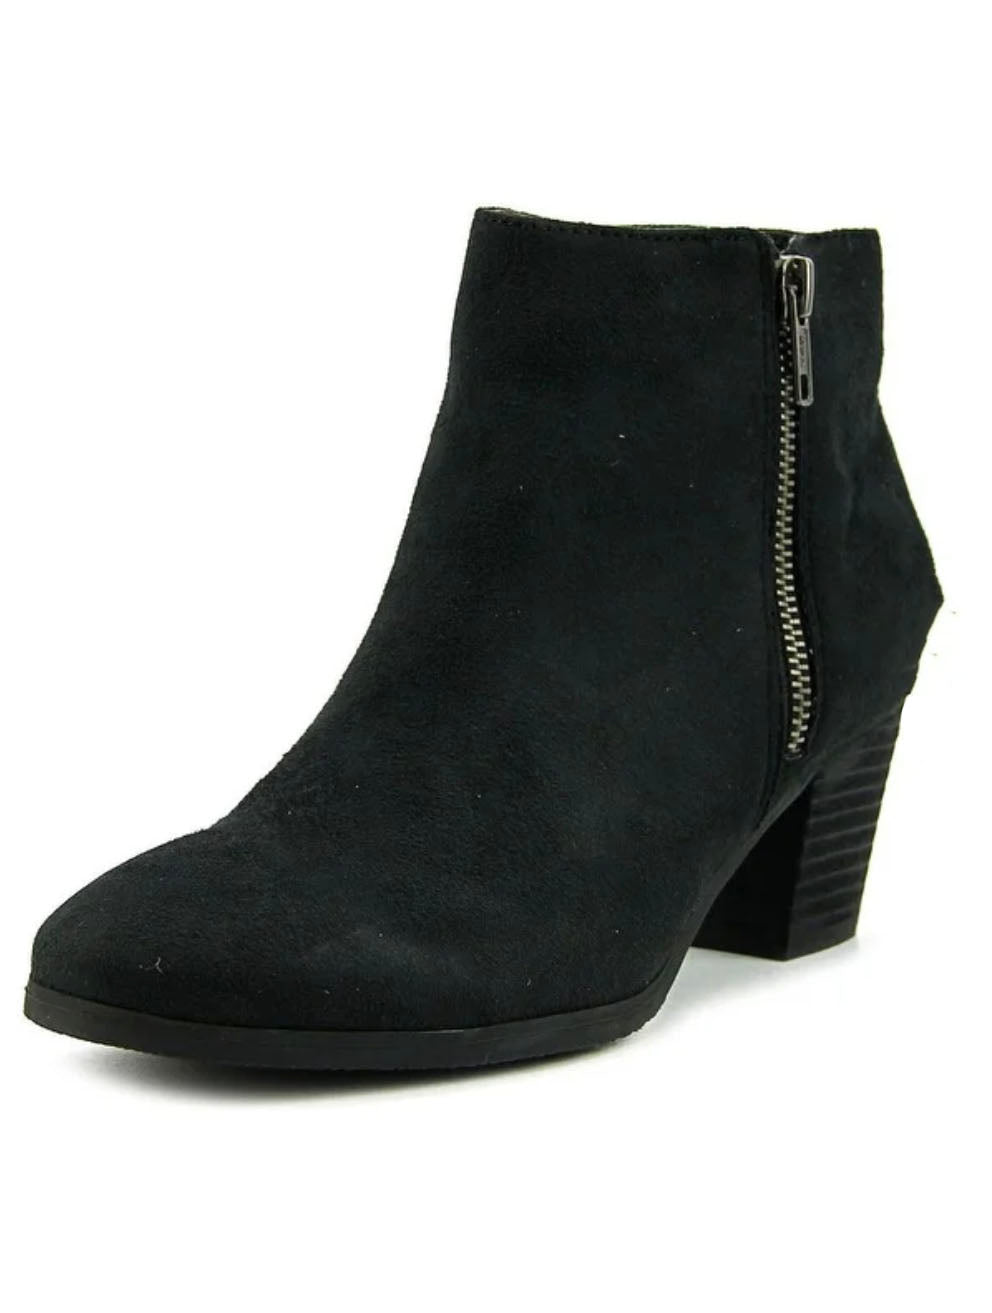 Madeline Girl Shiloh Bootie in Black